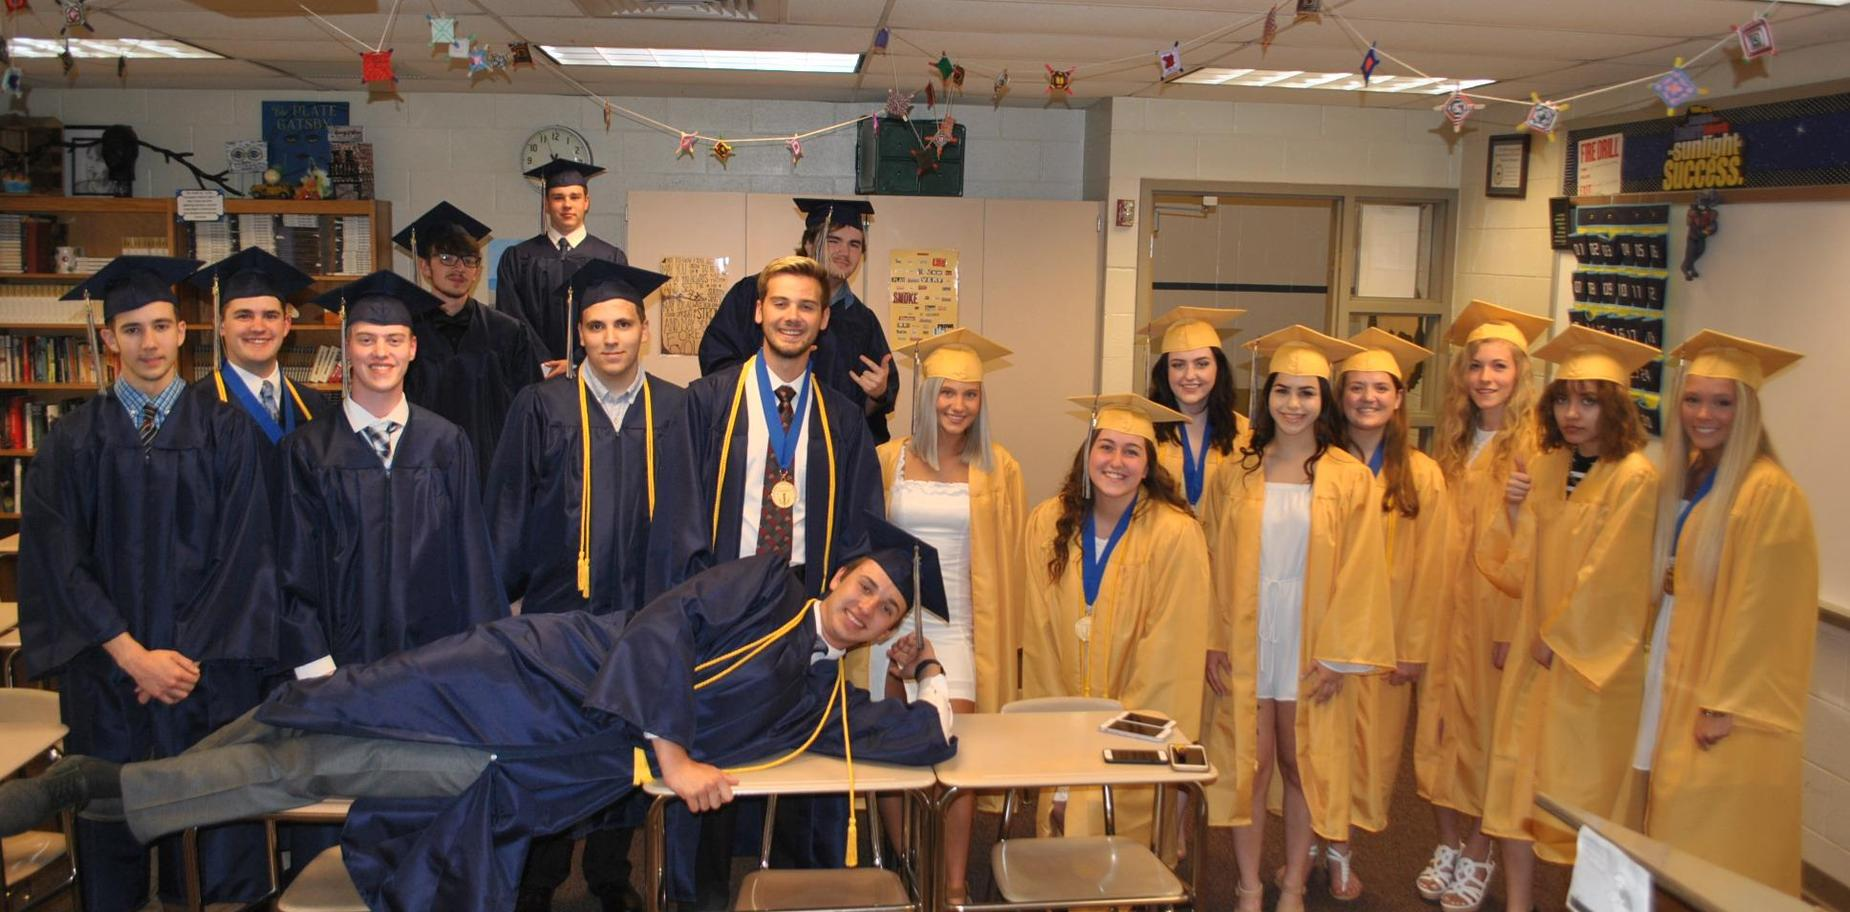 Seniors before commencement